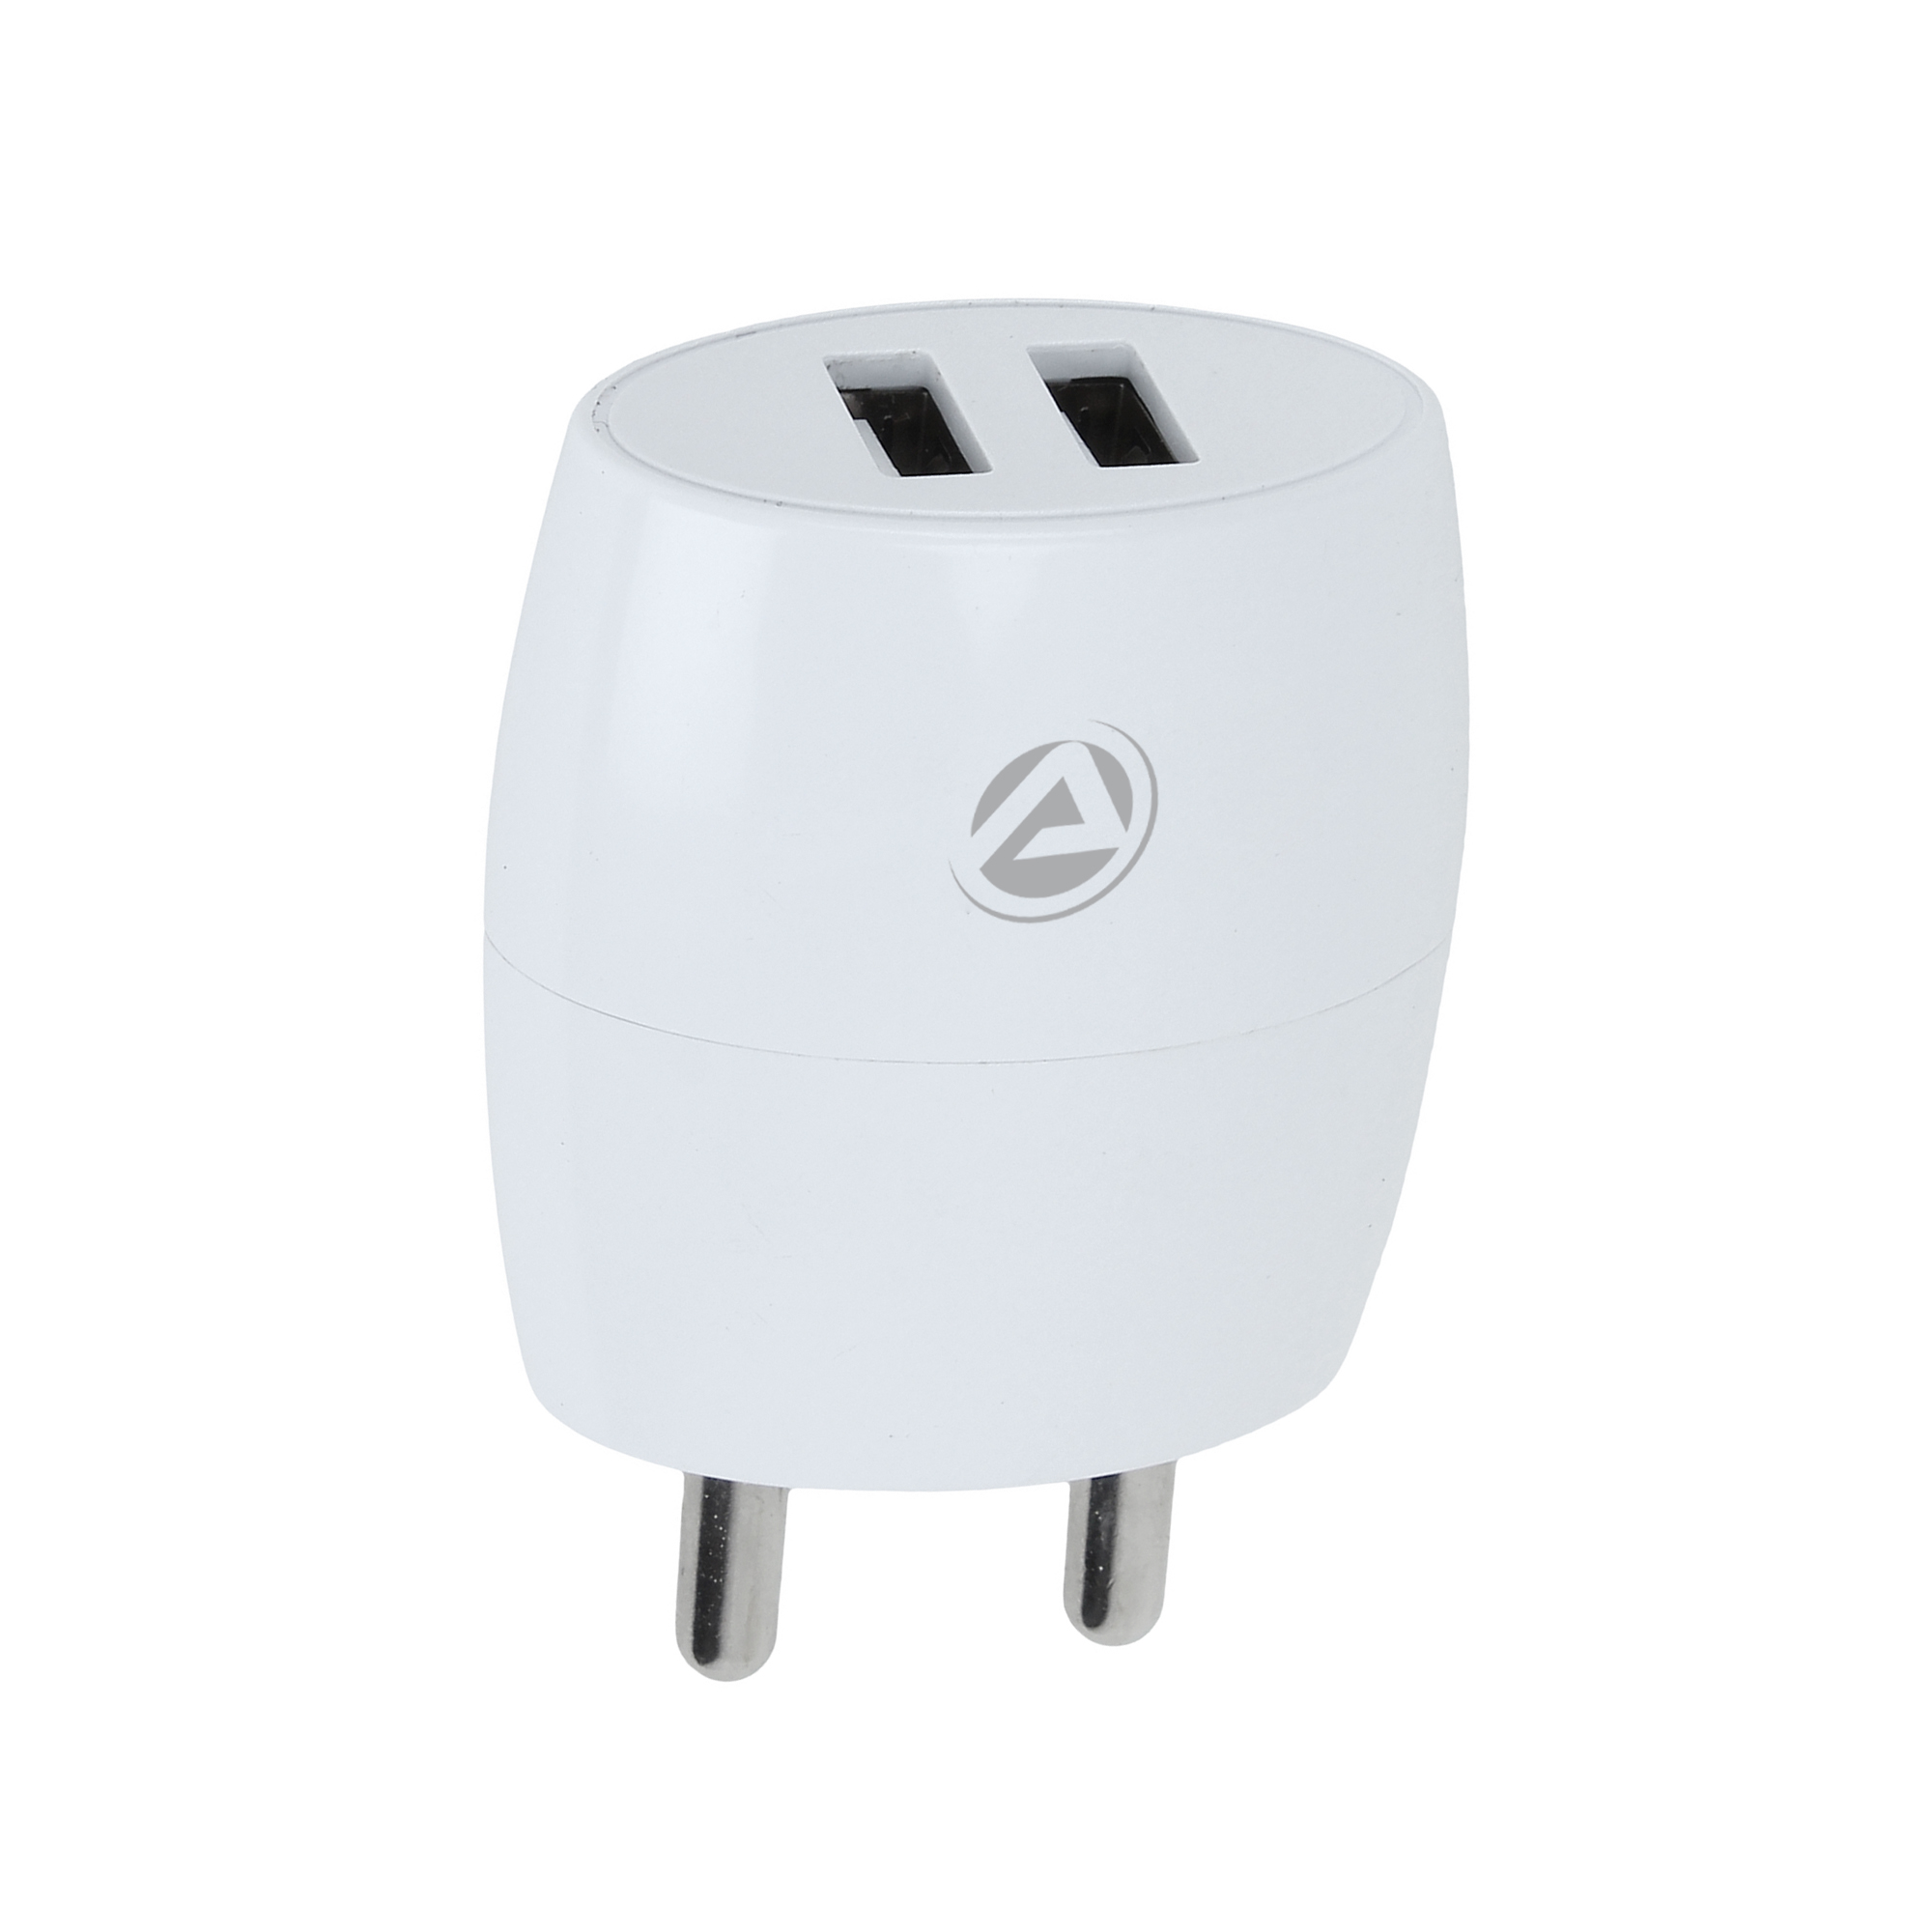 ARU AR-245 2.1 Amp Dual Port Fast Charger with Charge & Sync USB Cable